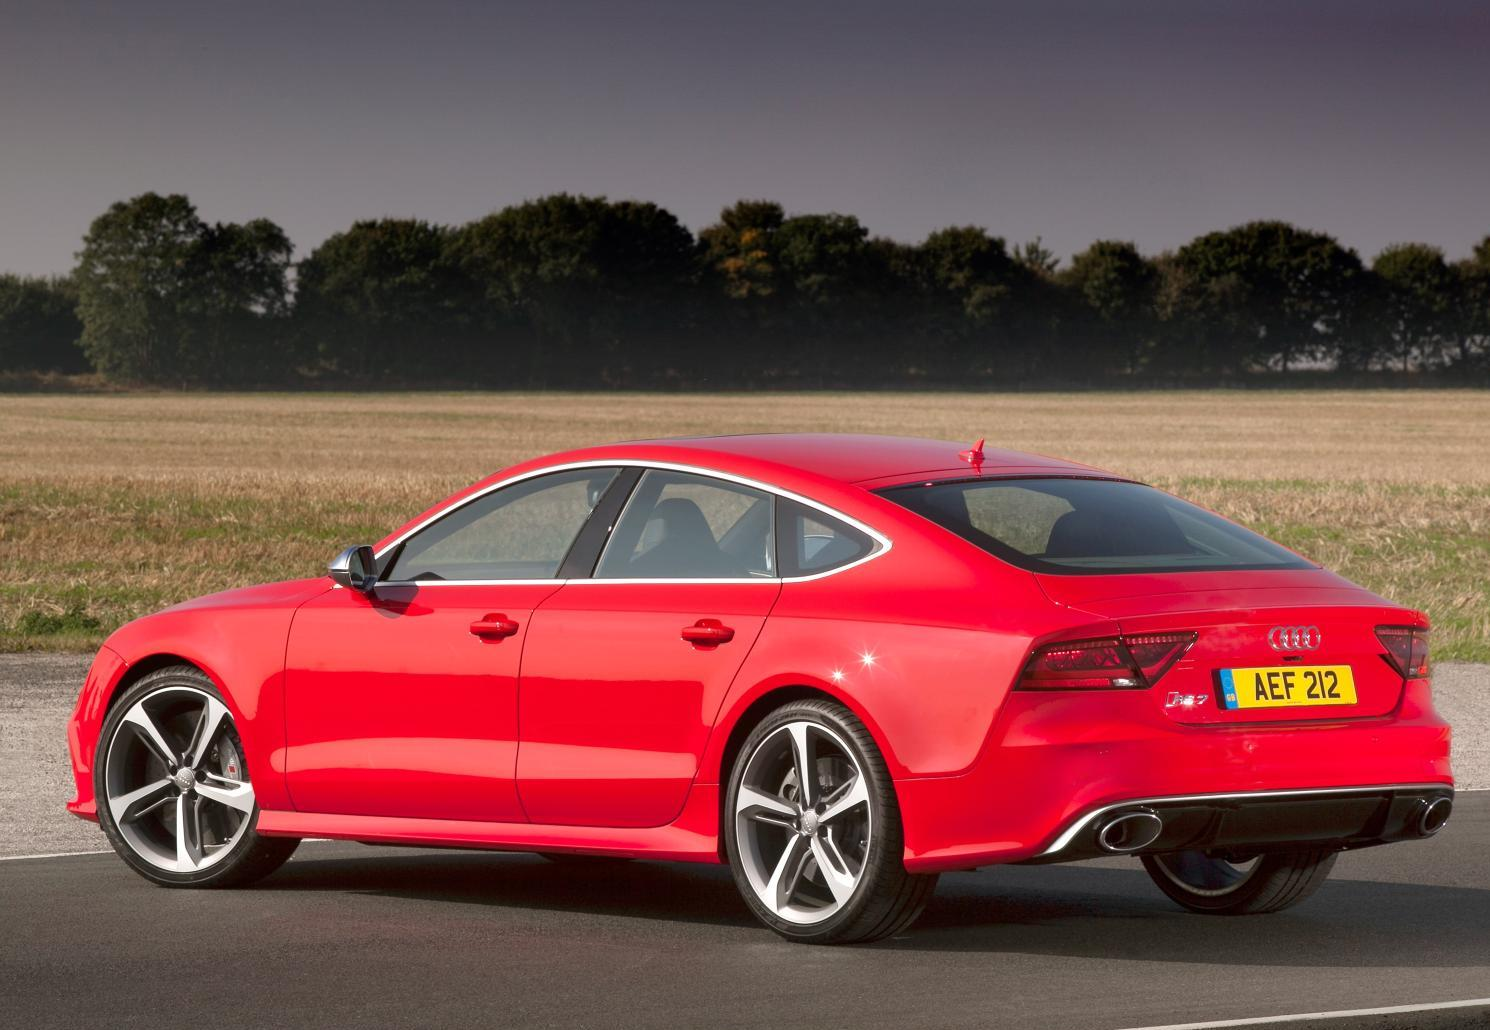 Audi RS7 Sporty sedan's India launch on January 6, 2014